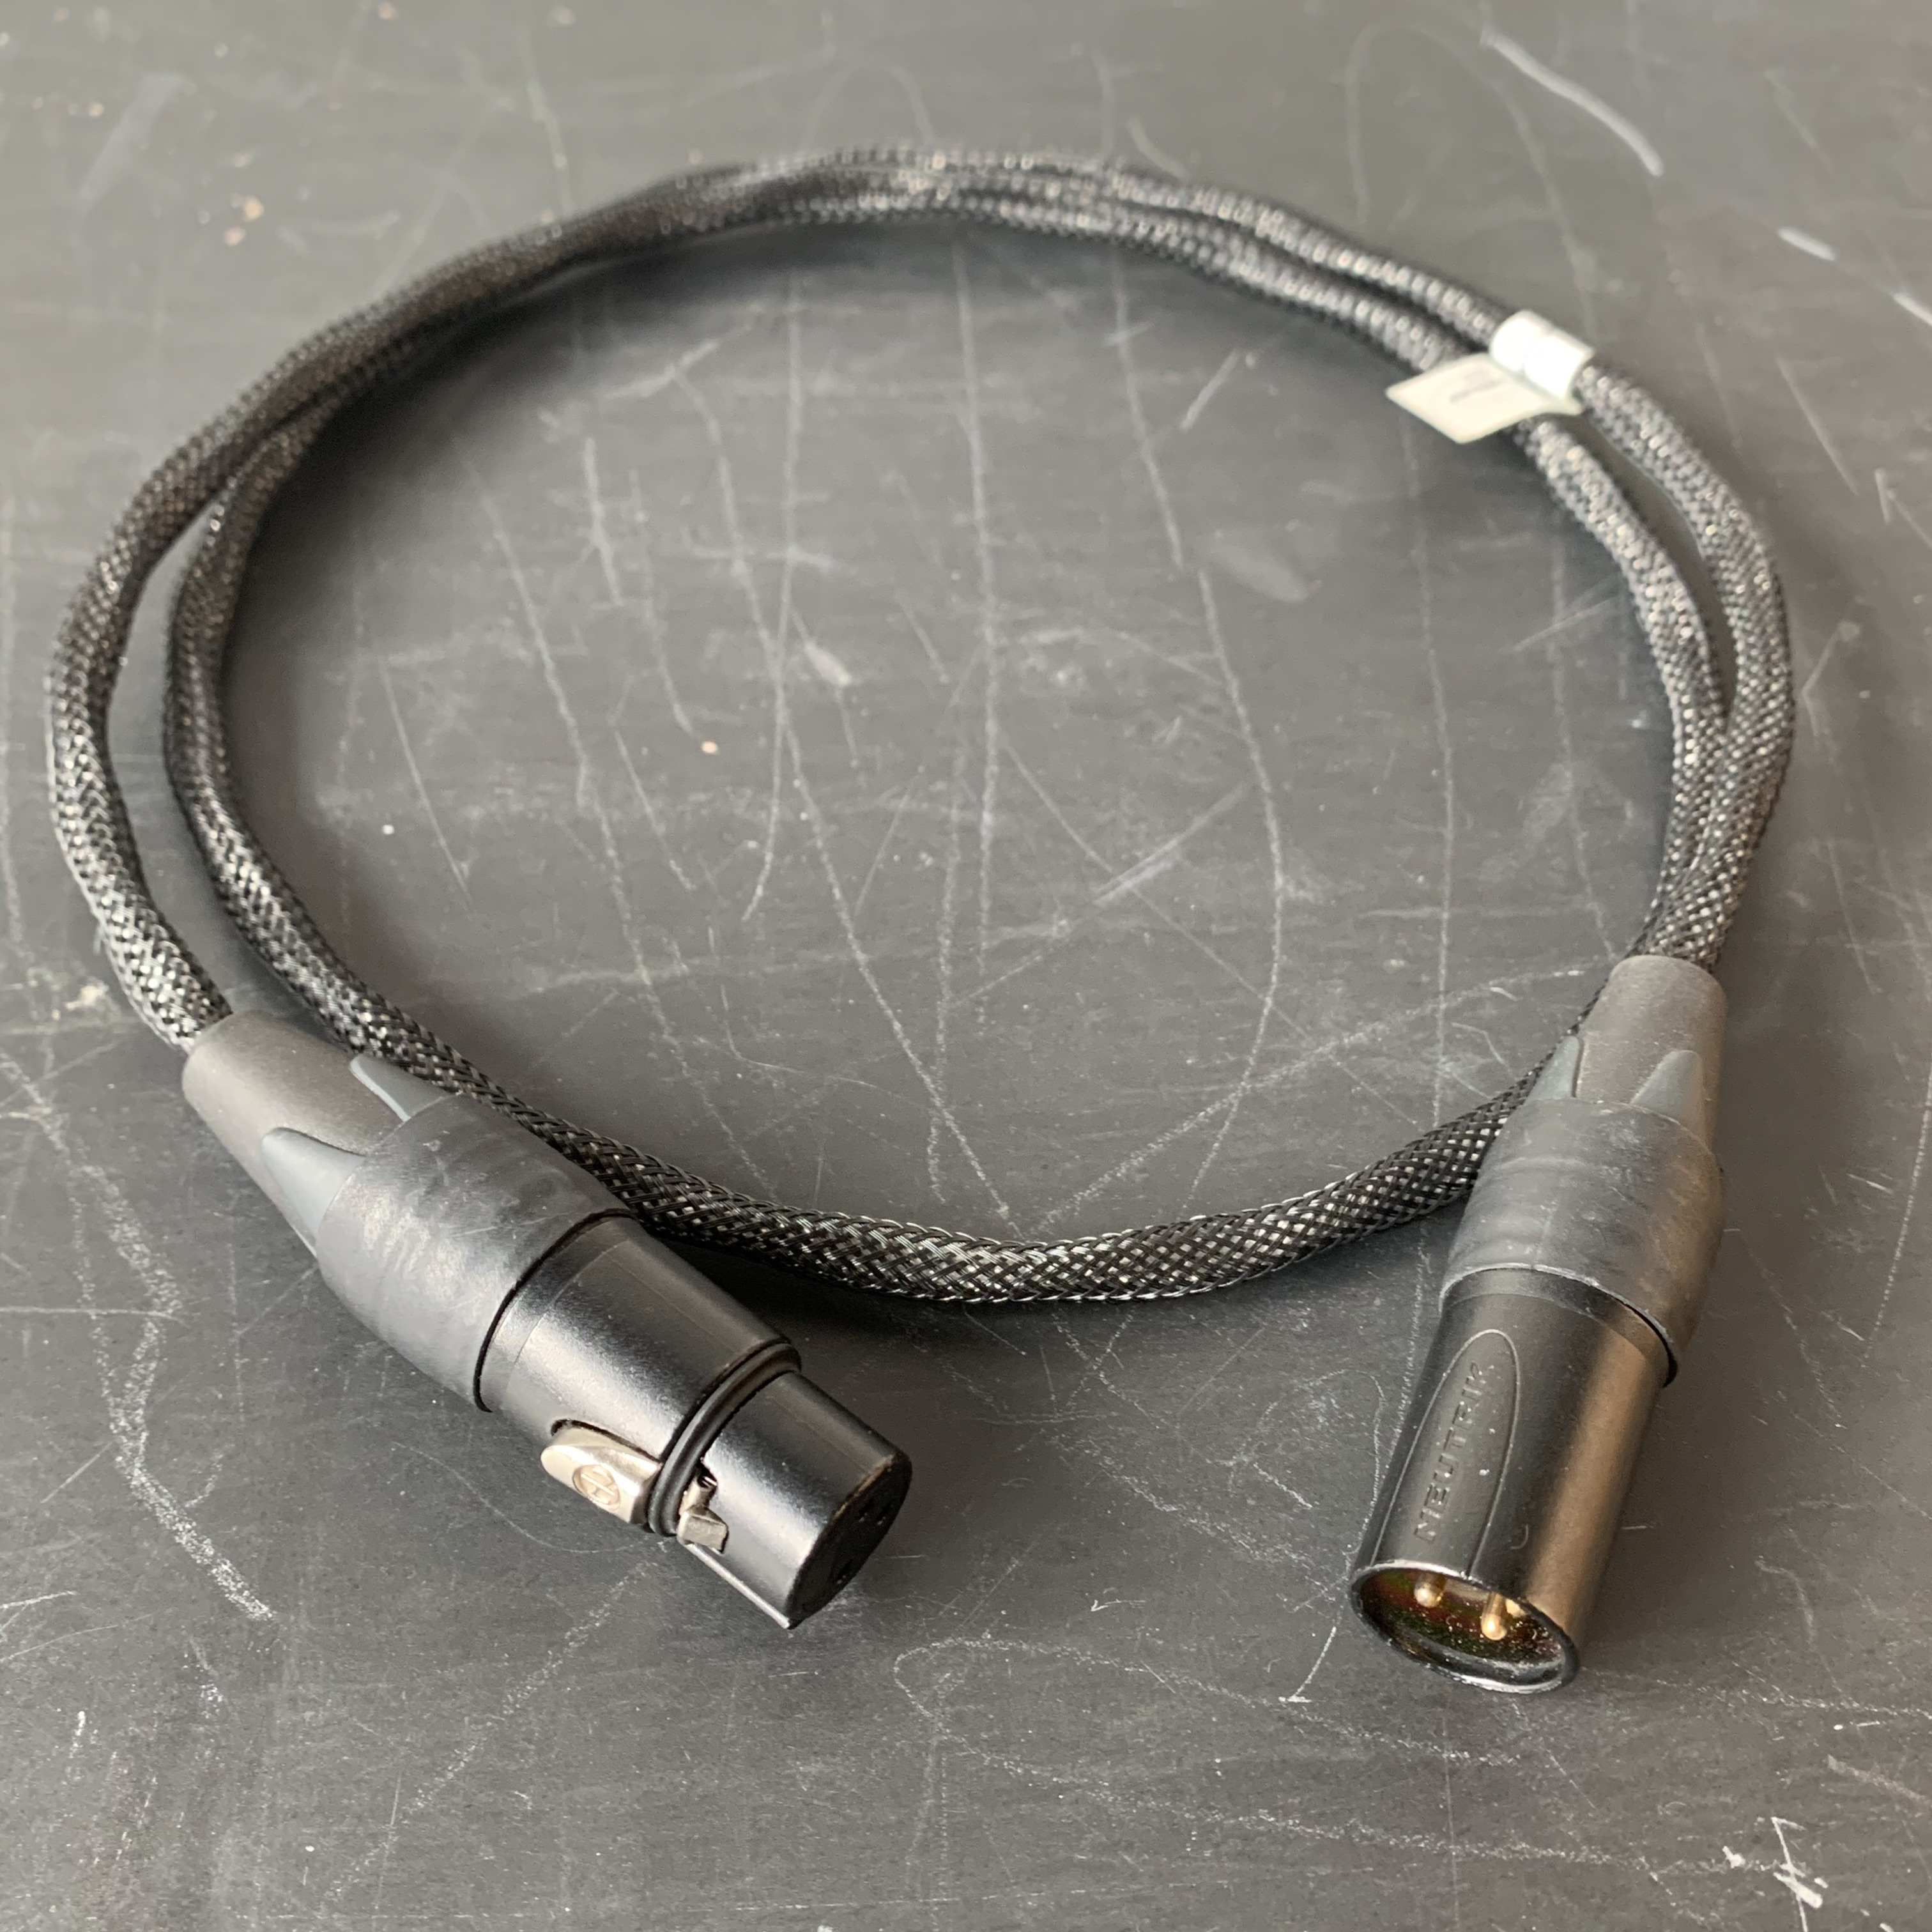 cable jorma digital xlr prise